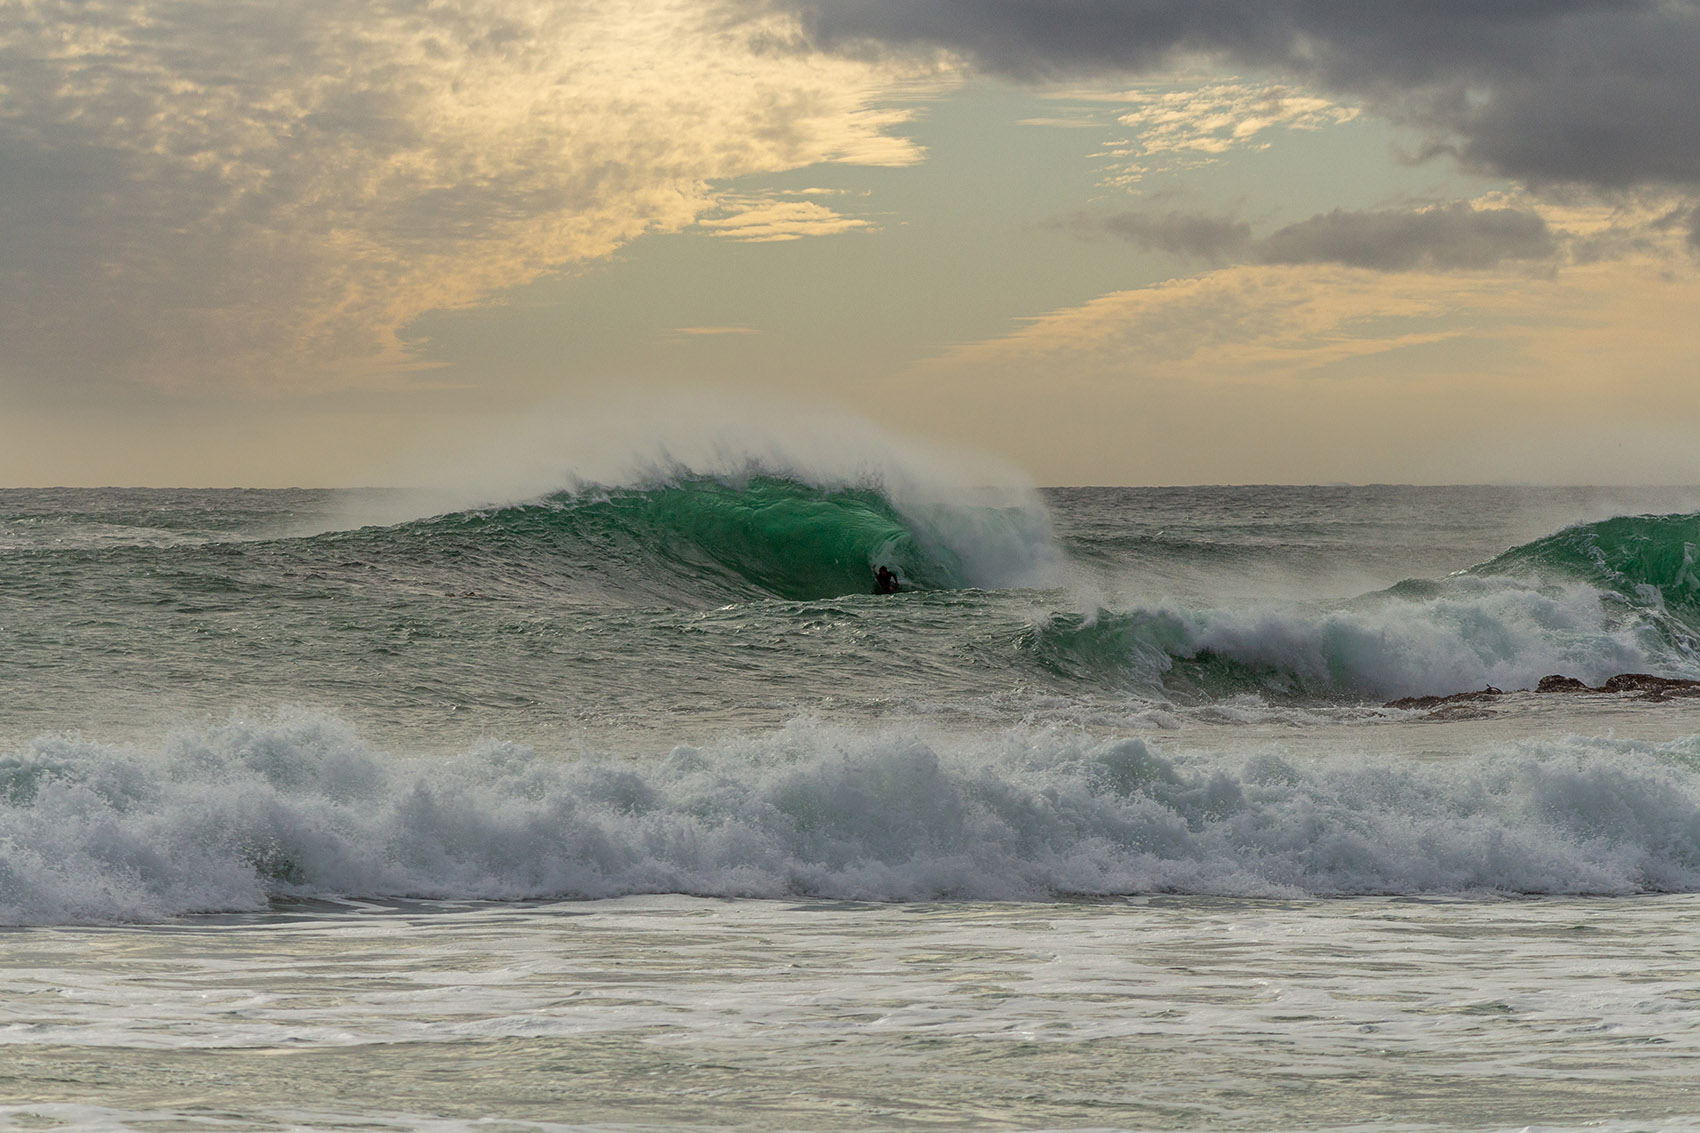 Surf photography IMG 4619 w